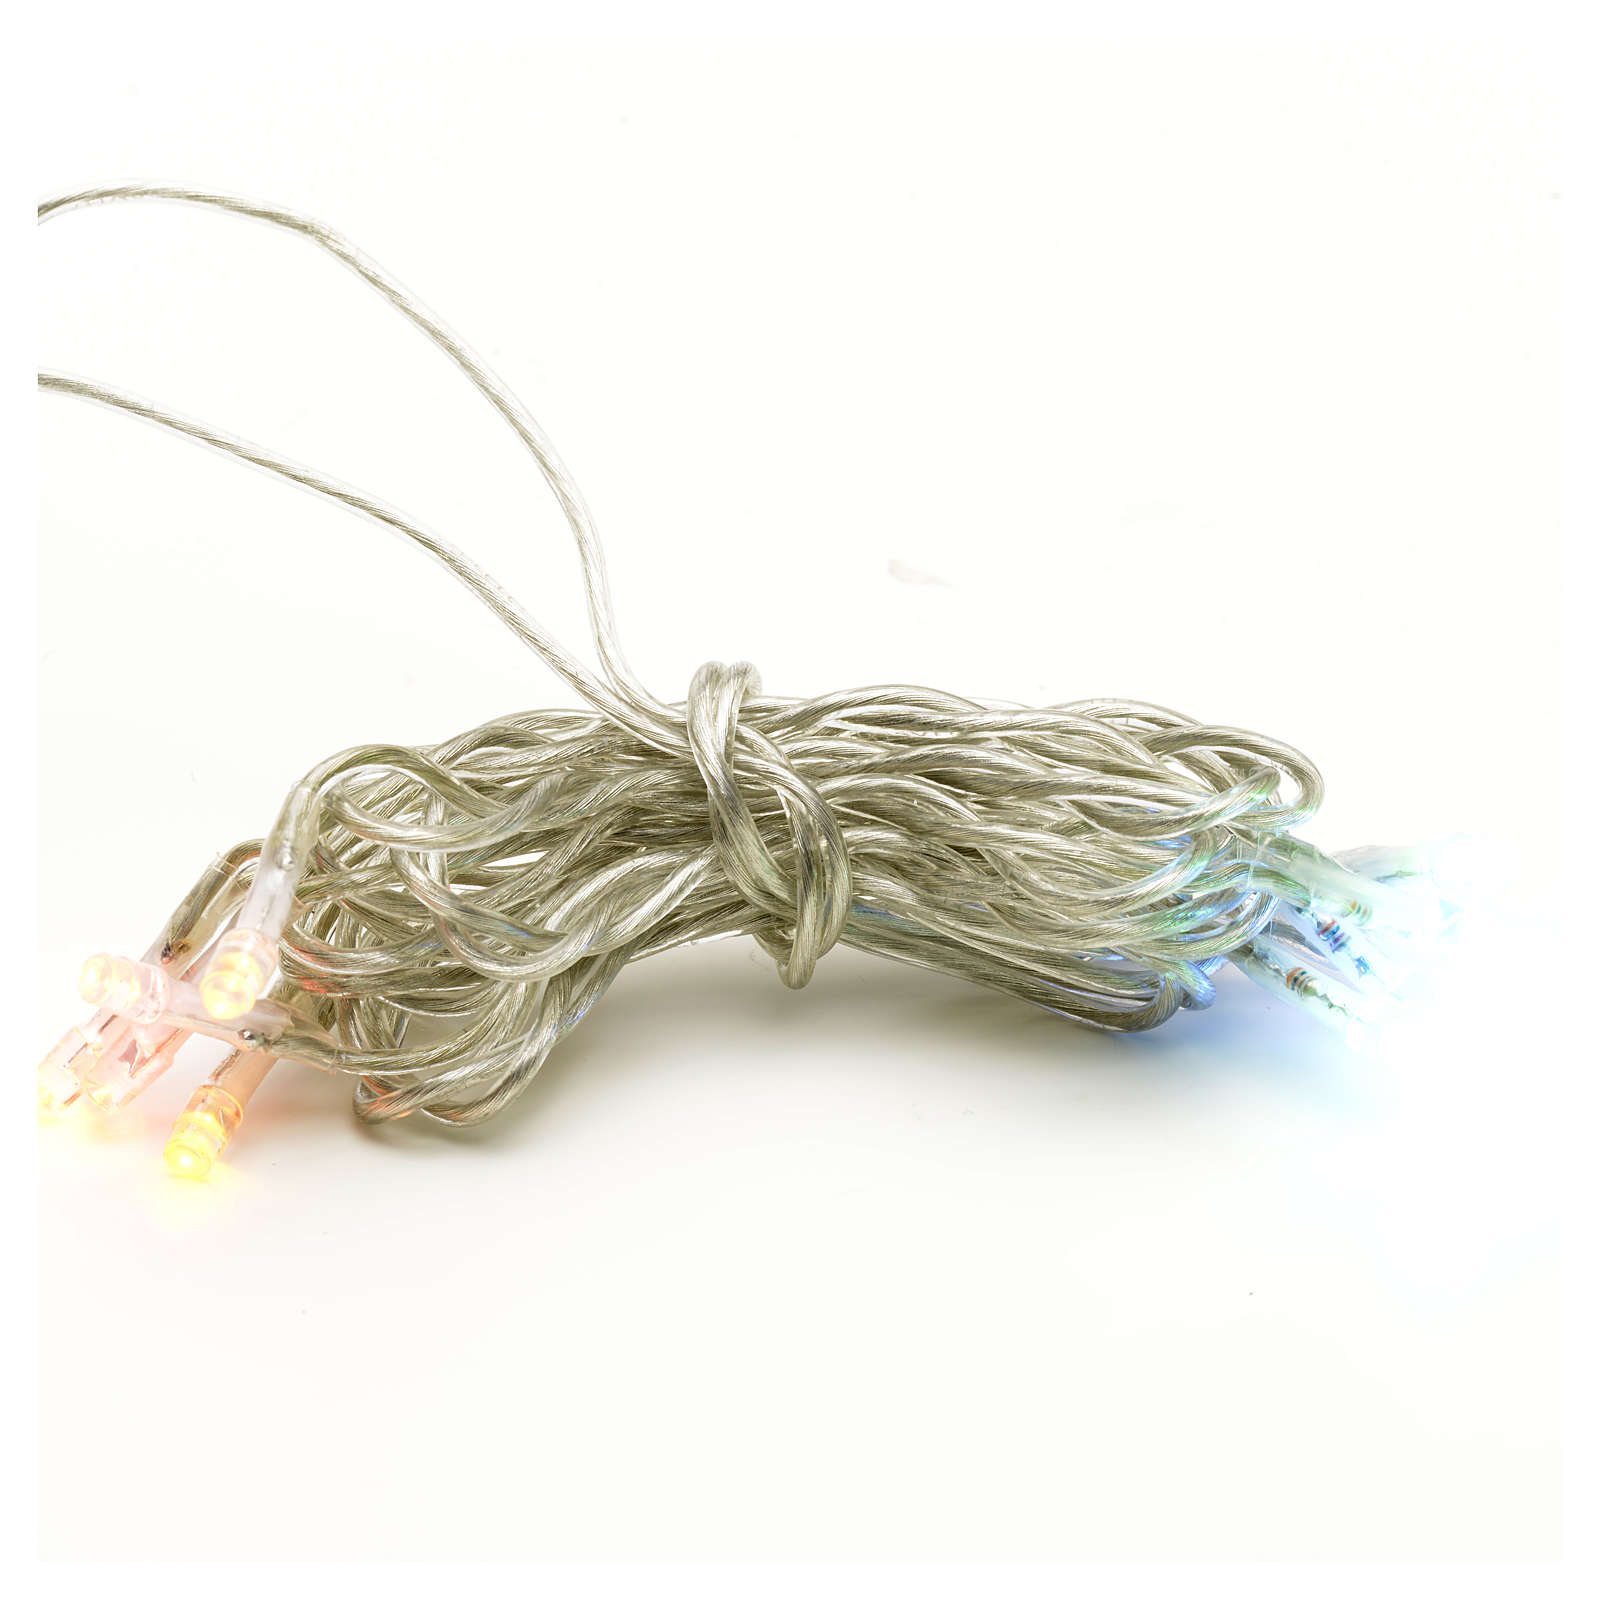 Luz 10 LED Multicolor cable transparente 3